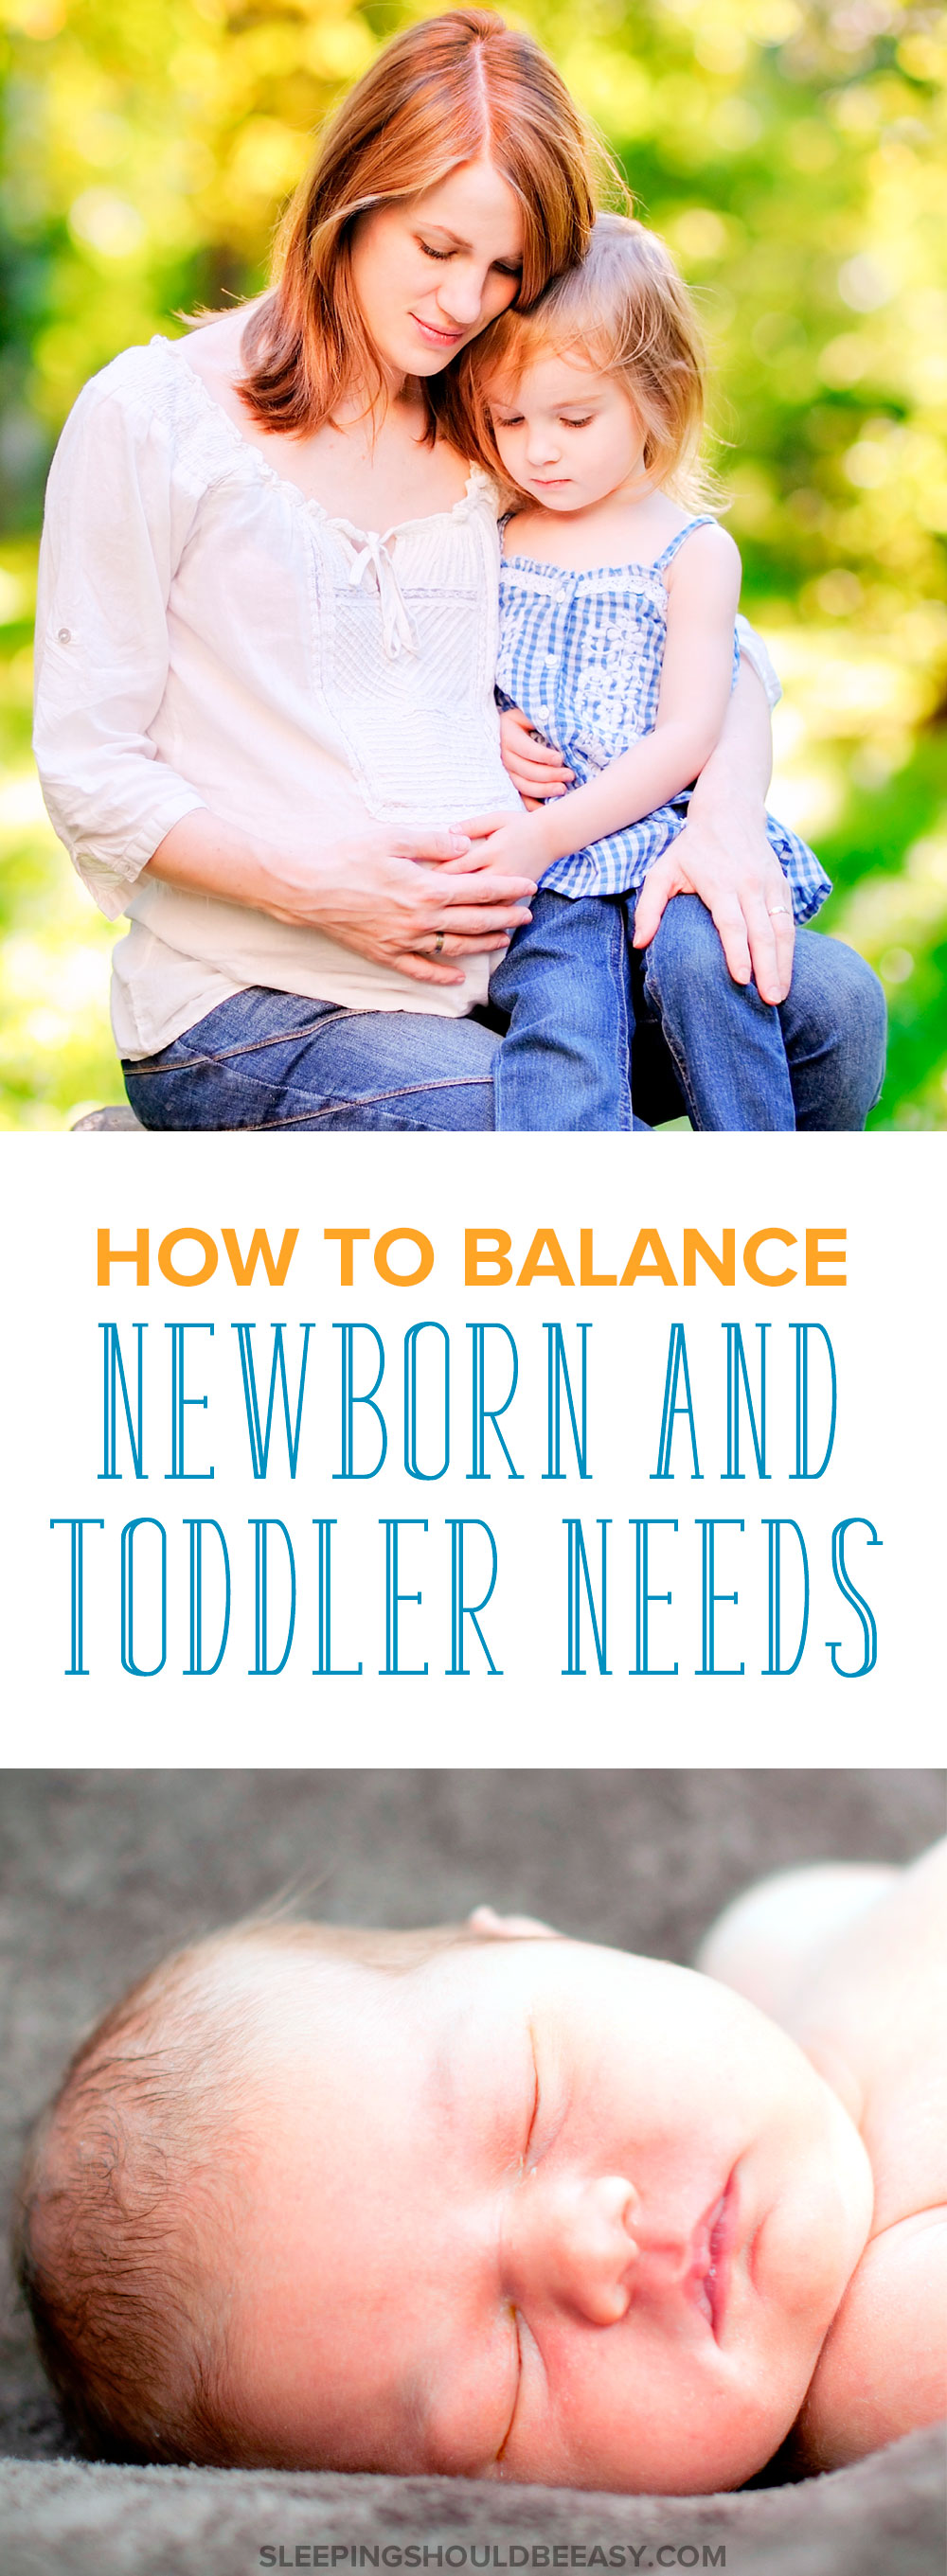 Are you expecting your second child? Caring for a newborn AND a toddler takes some juggling. Here are some tips on balancing newborn and toddler needs.